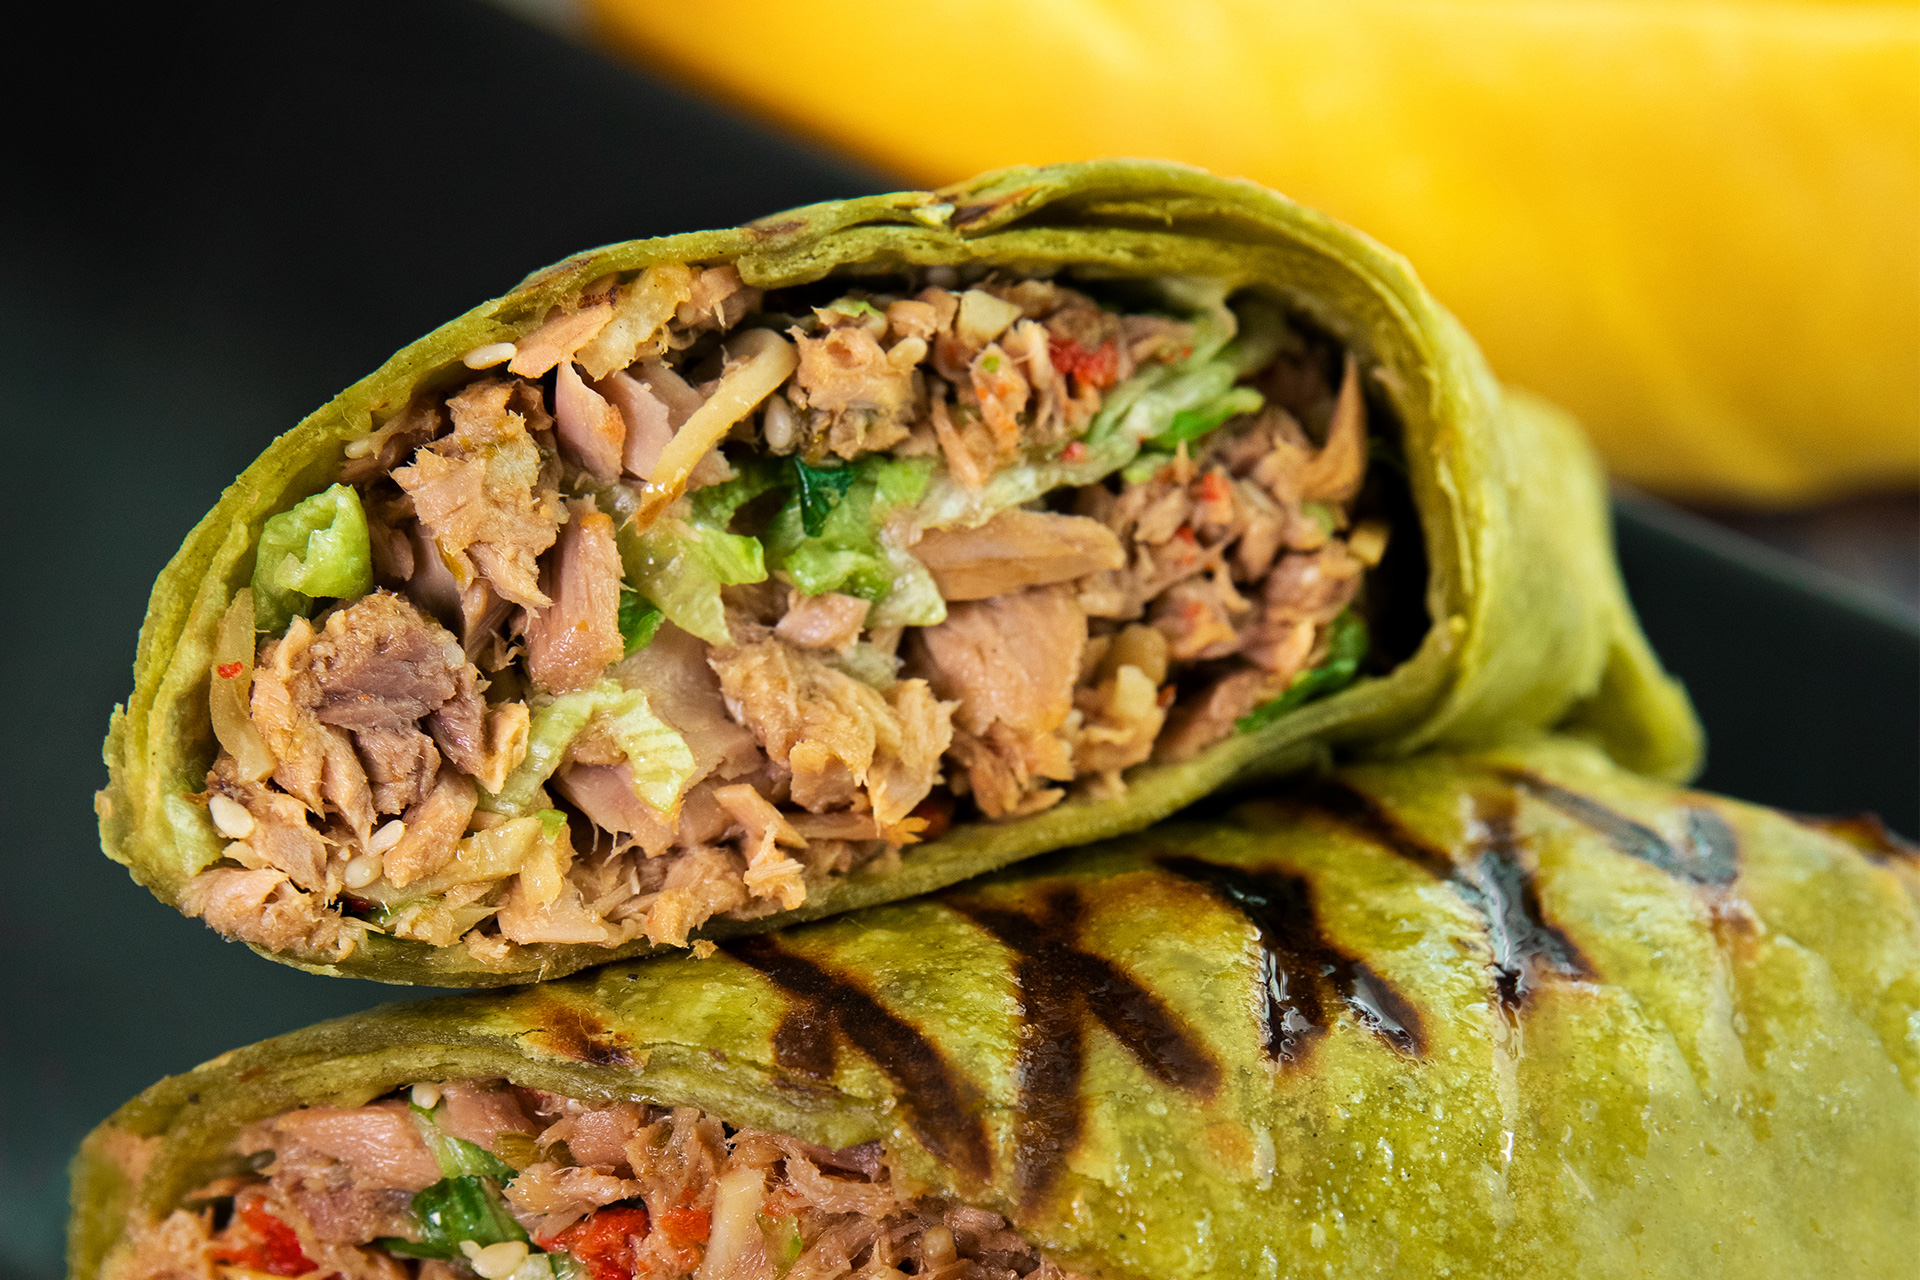 Zesty Grilled Tuna Wrap